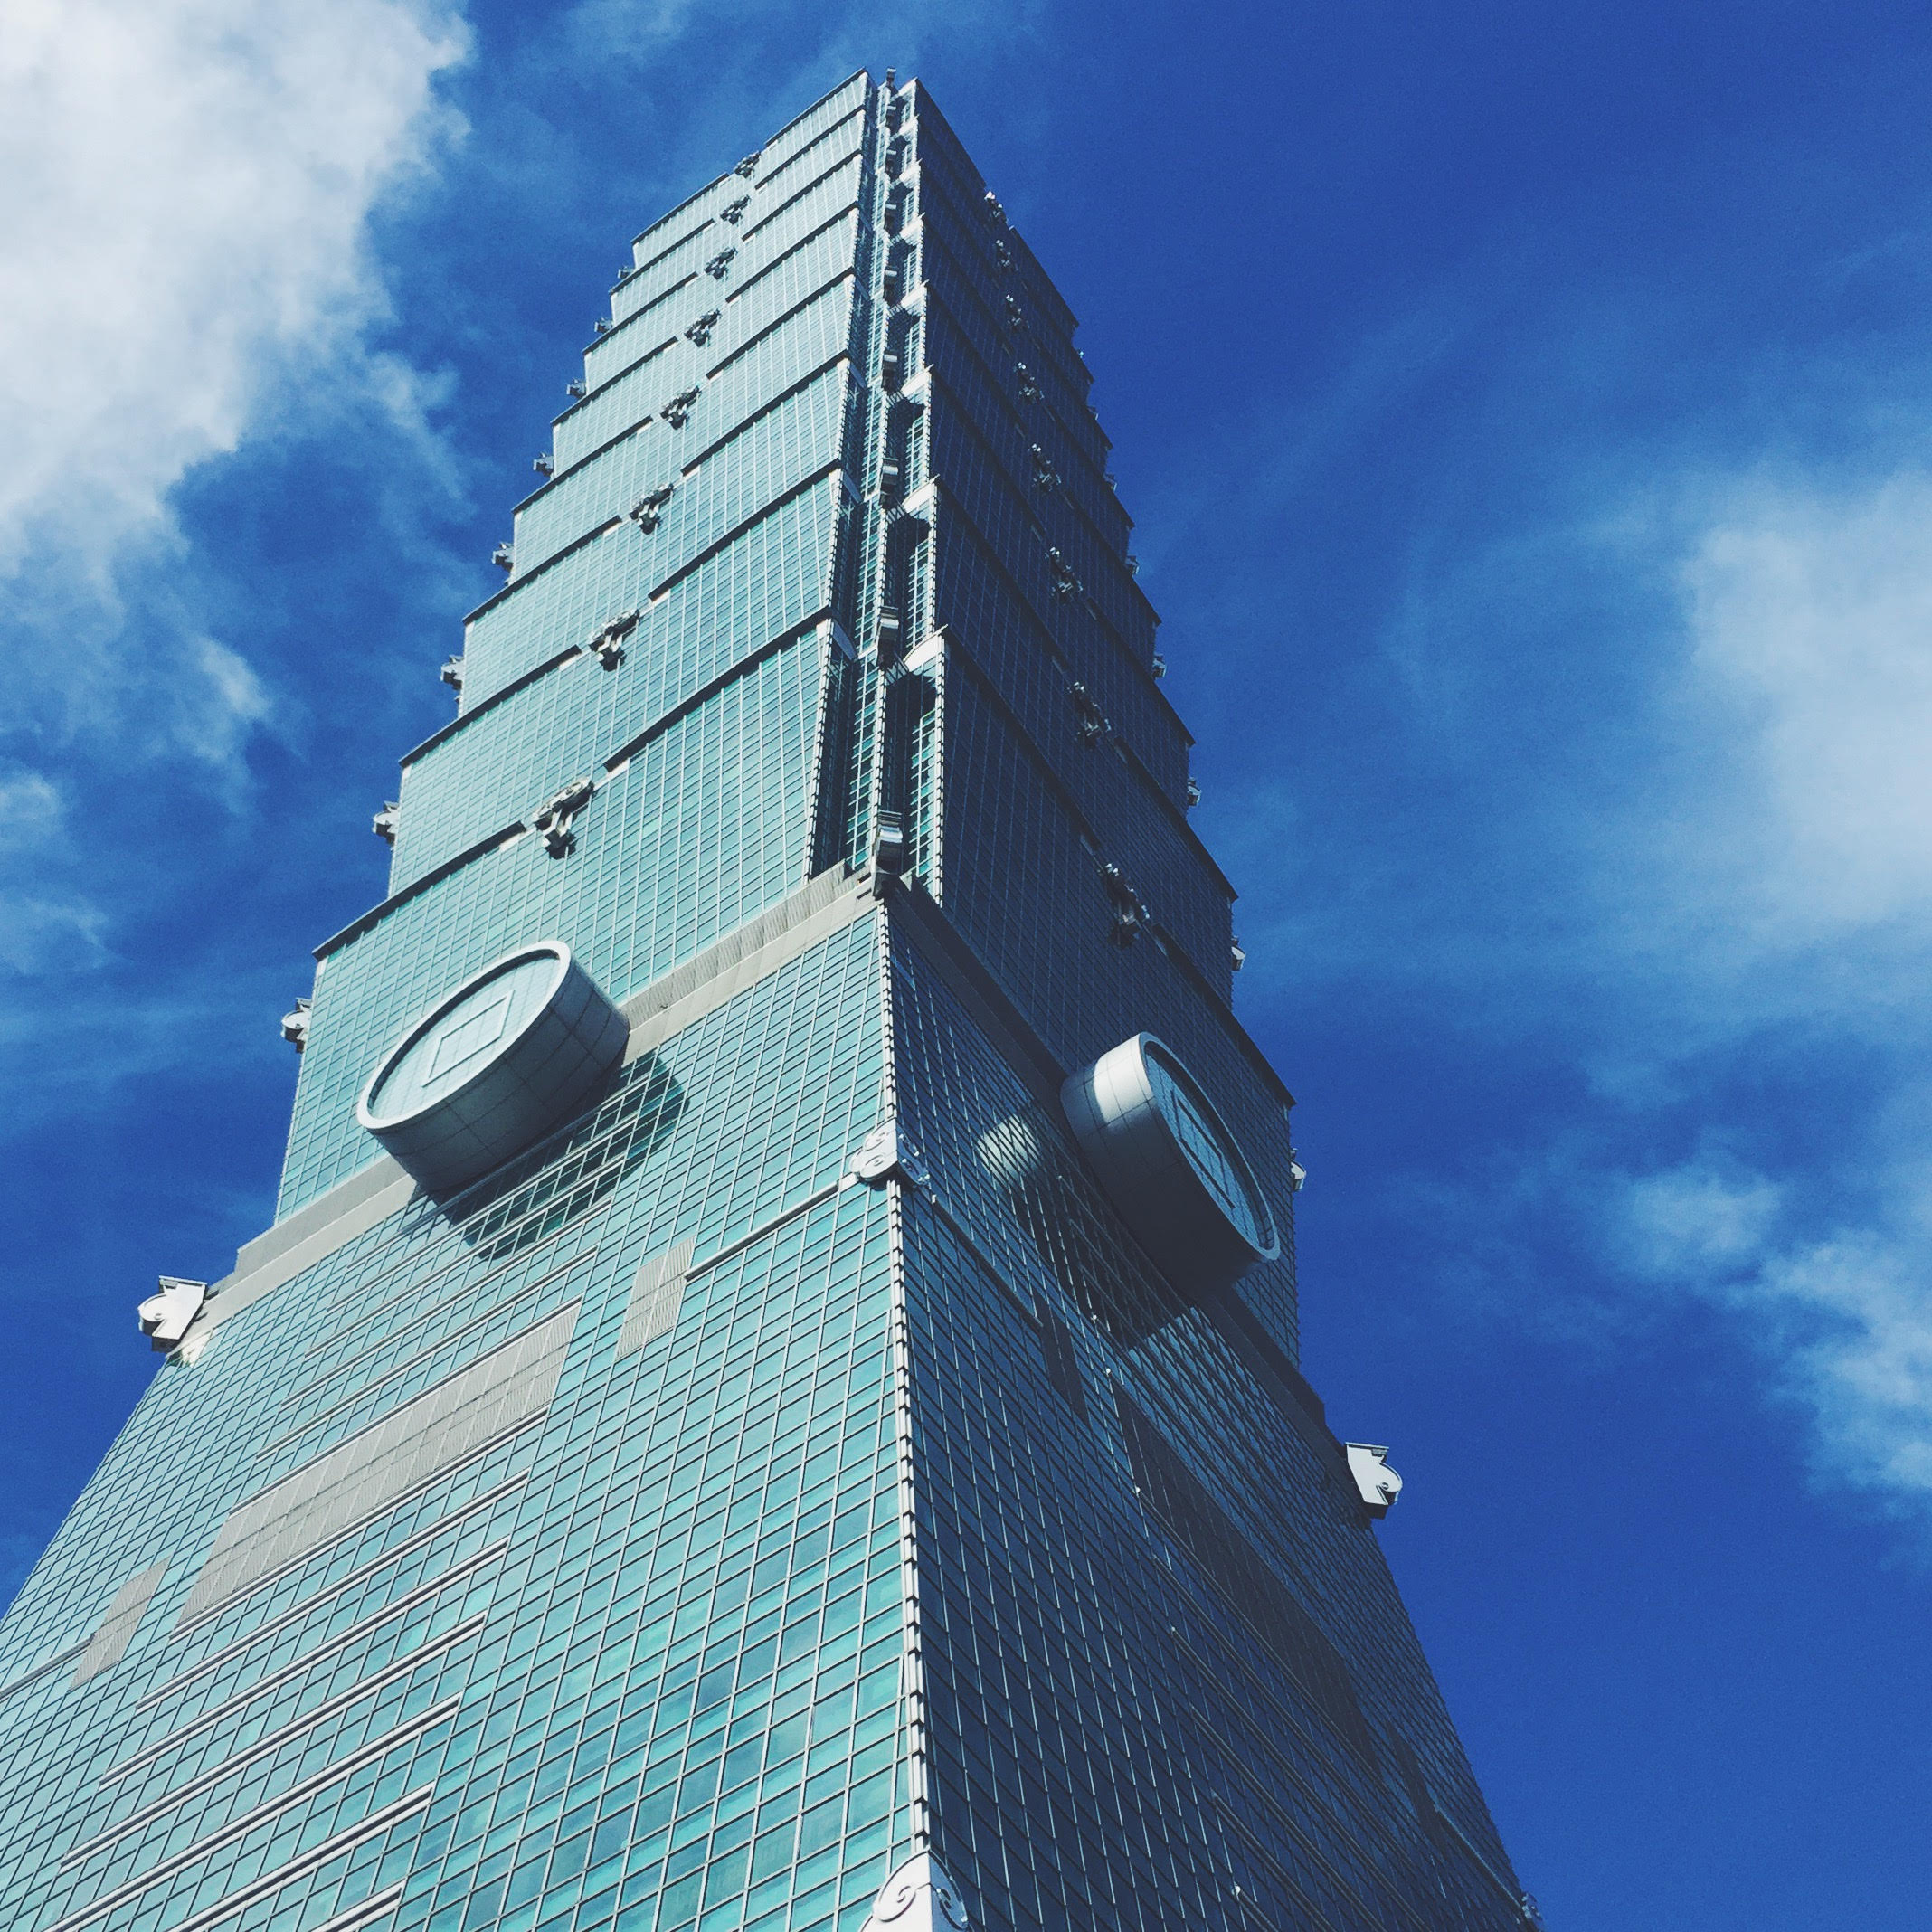 High and mighty Taipei 101, always an impressive sight.